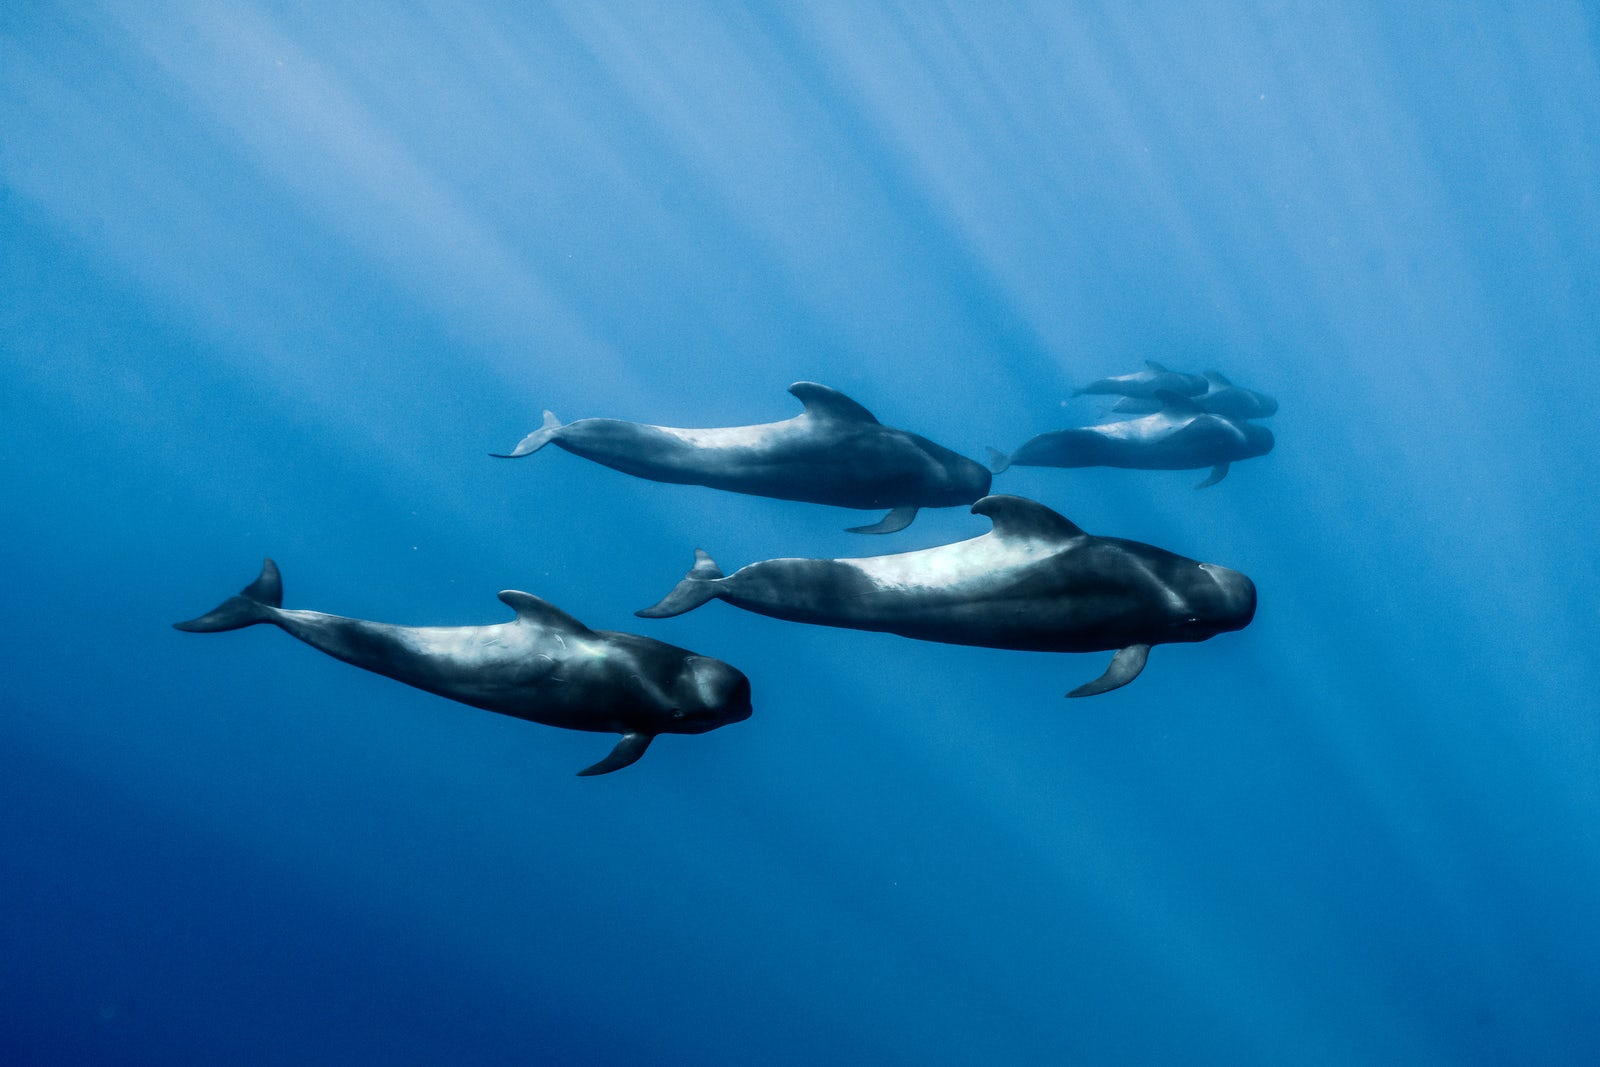 Family of short-finned pilot whales underwater on Azores Islands, Picture © Credits to Dmitry Kokh